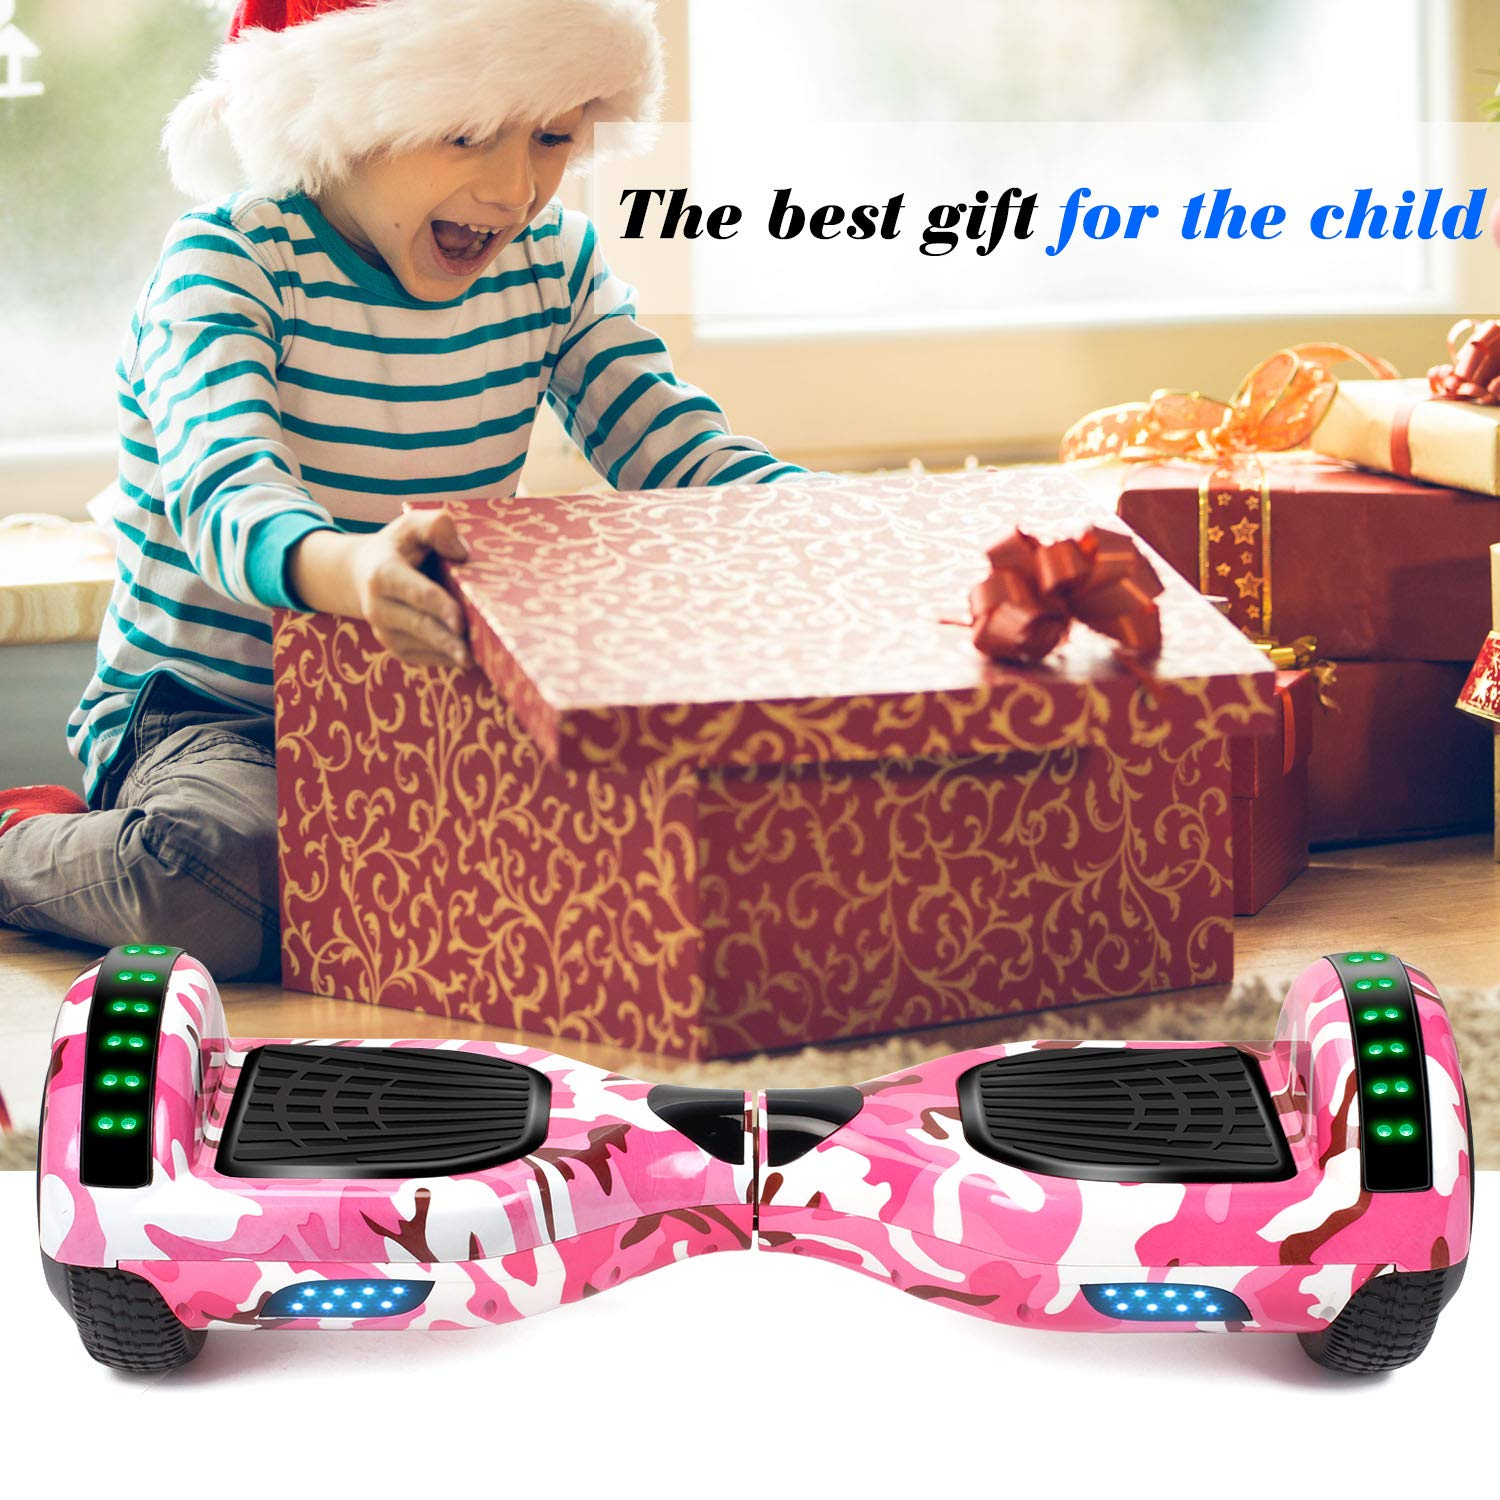 SISIGAD Hoverboard Self Balancing Scooter 6.5'' Two-Wheel Self Balancing Hoverboard with Bluetooth Speaker and LED Lights Electric Scooter for Adult Kids Gift UL 2272 Certified Fun Edition - Pink Camo by SISIGAD (Image #6)